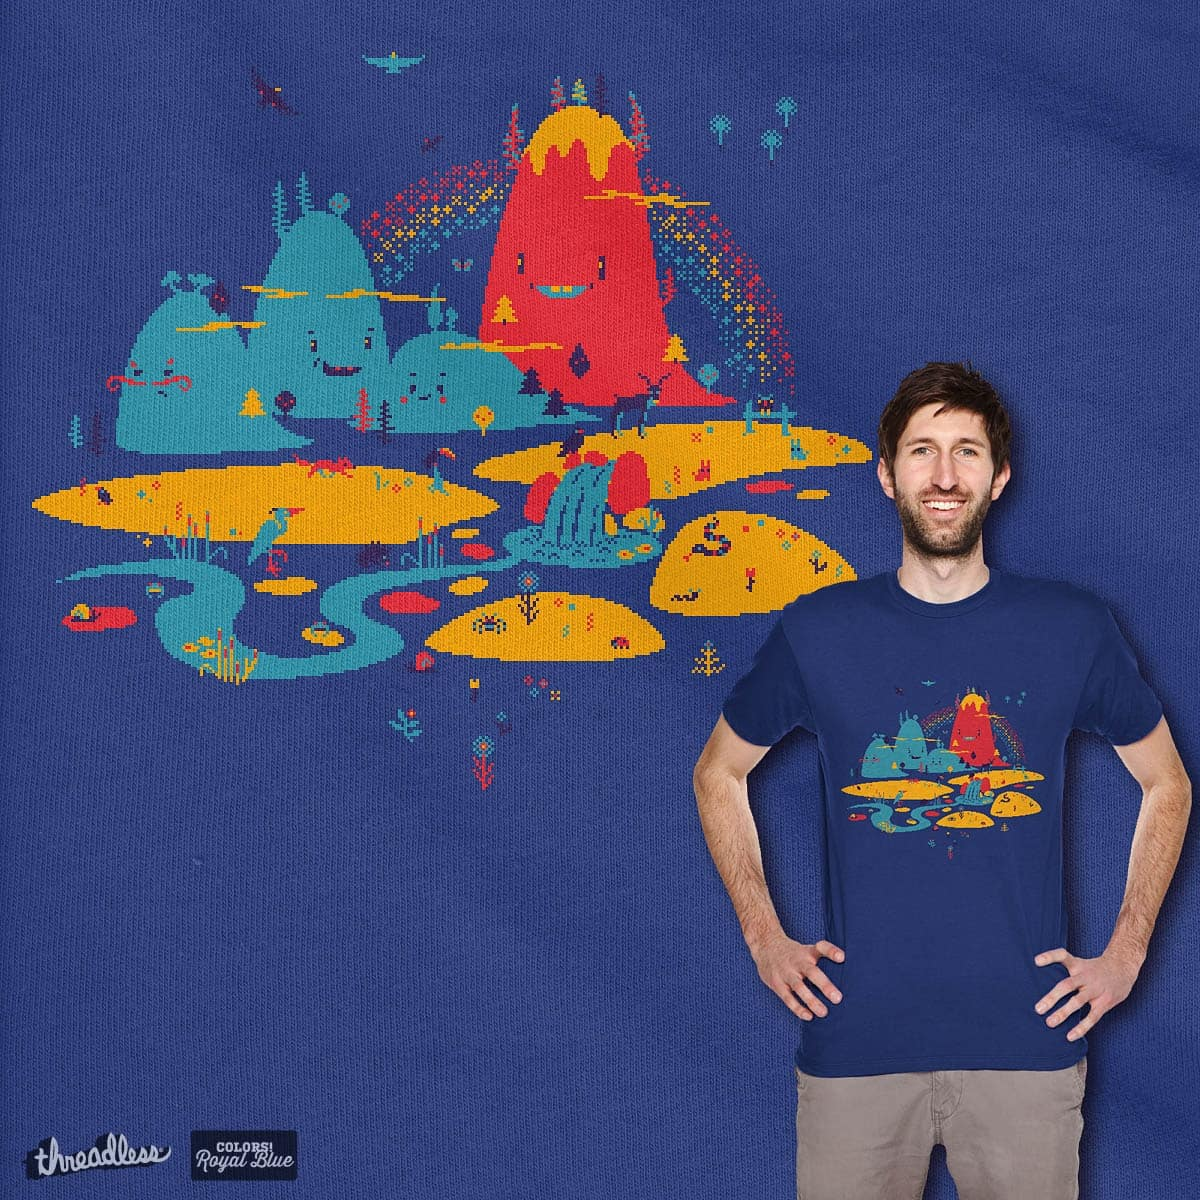 The Long Way to School by Manupix on Threadless